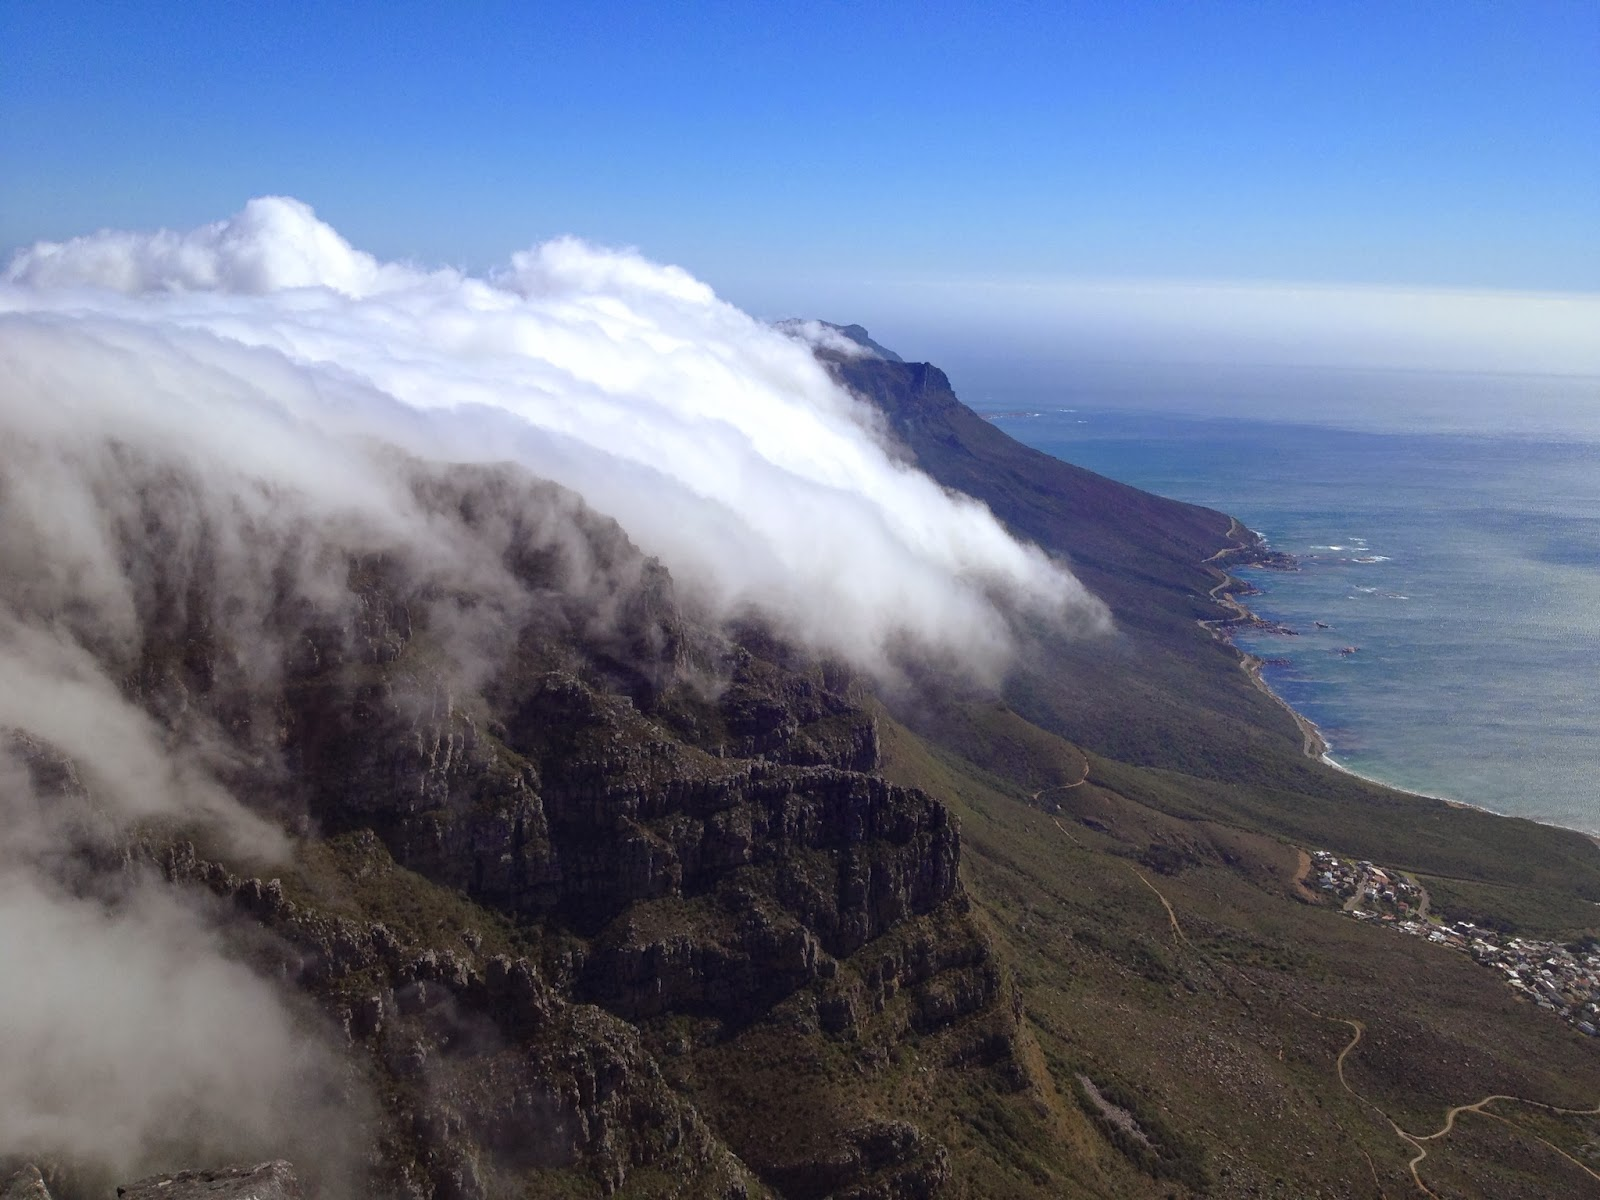 Cape Town - Clouds sit right on top of Table Mountain